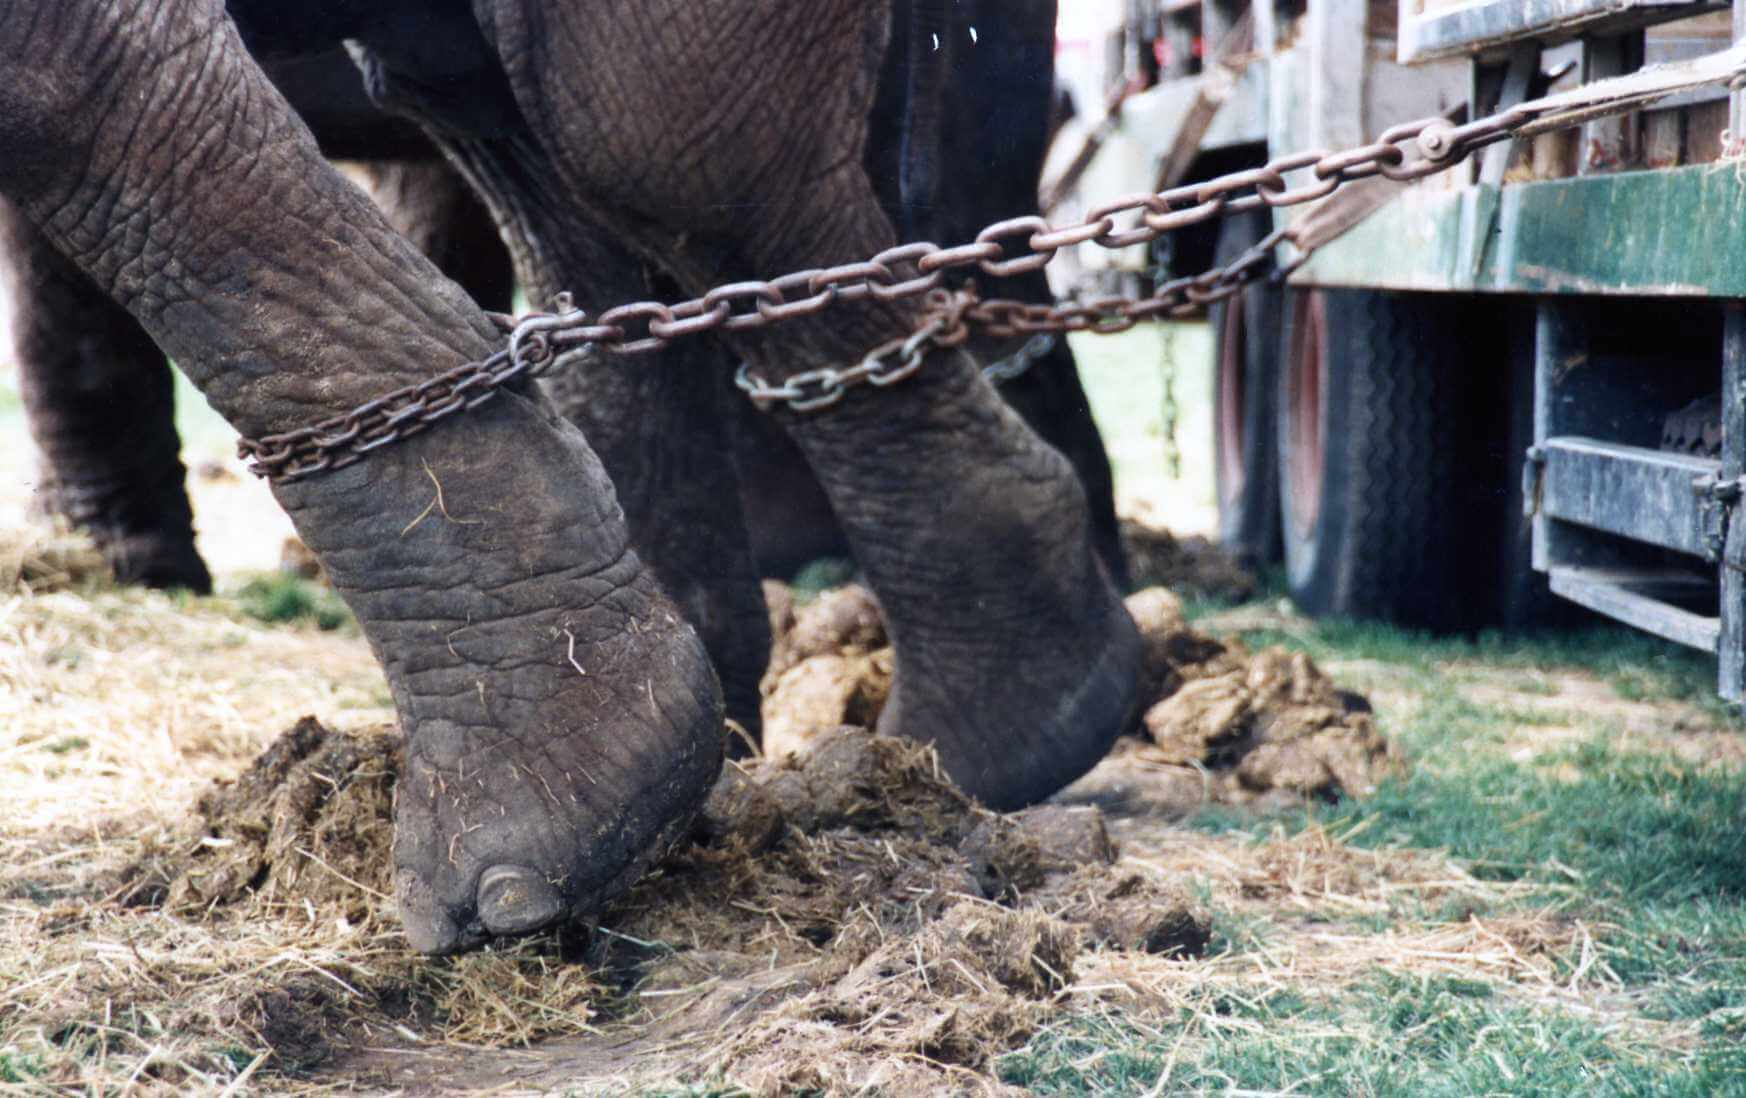 Elephant foot chained